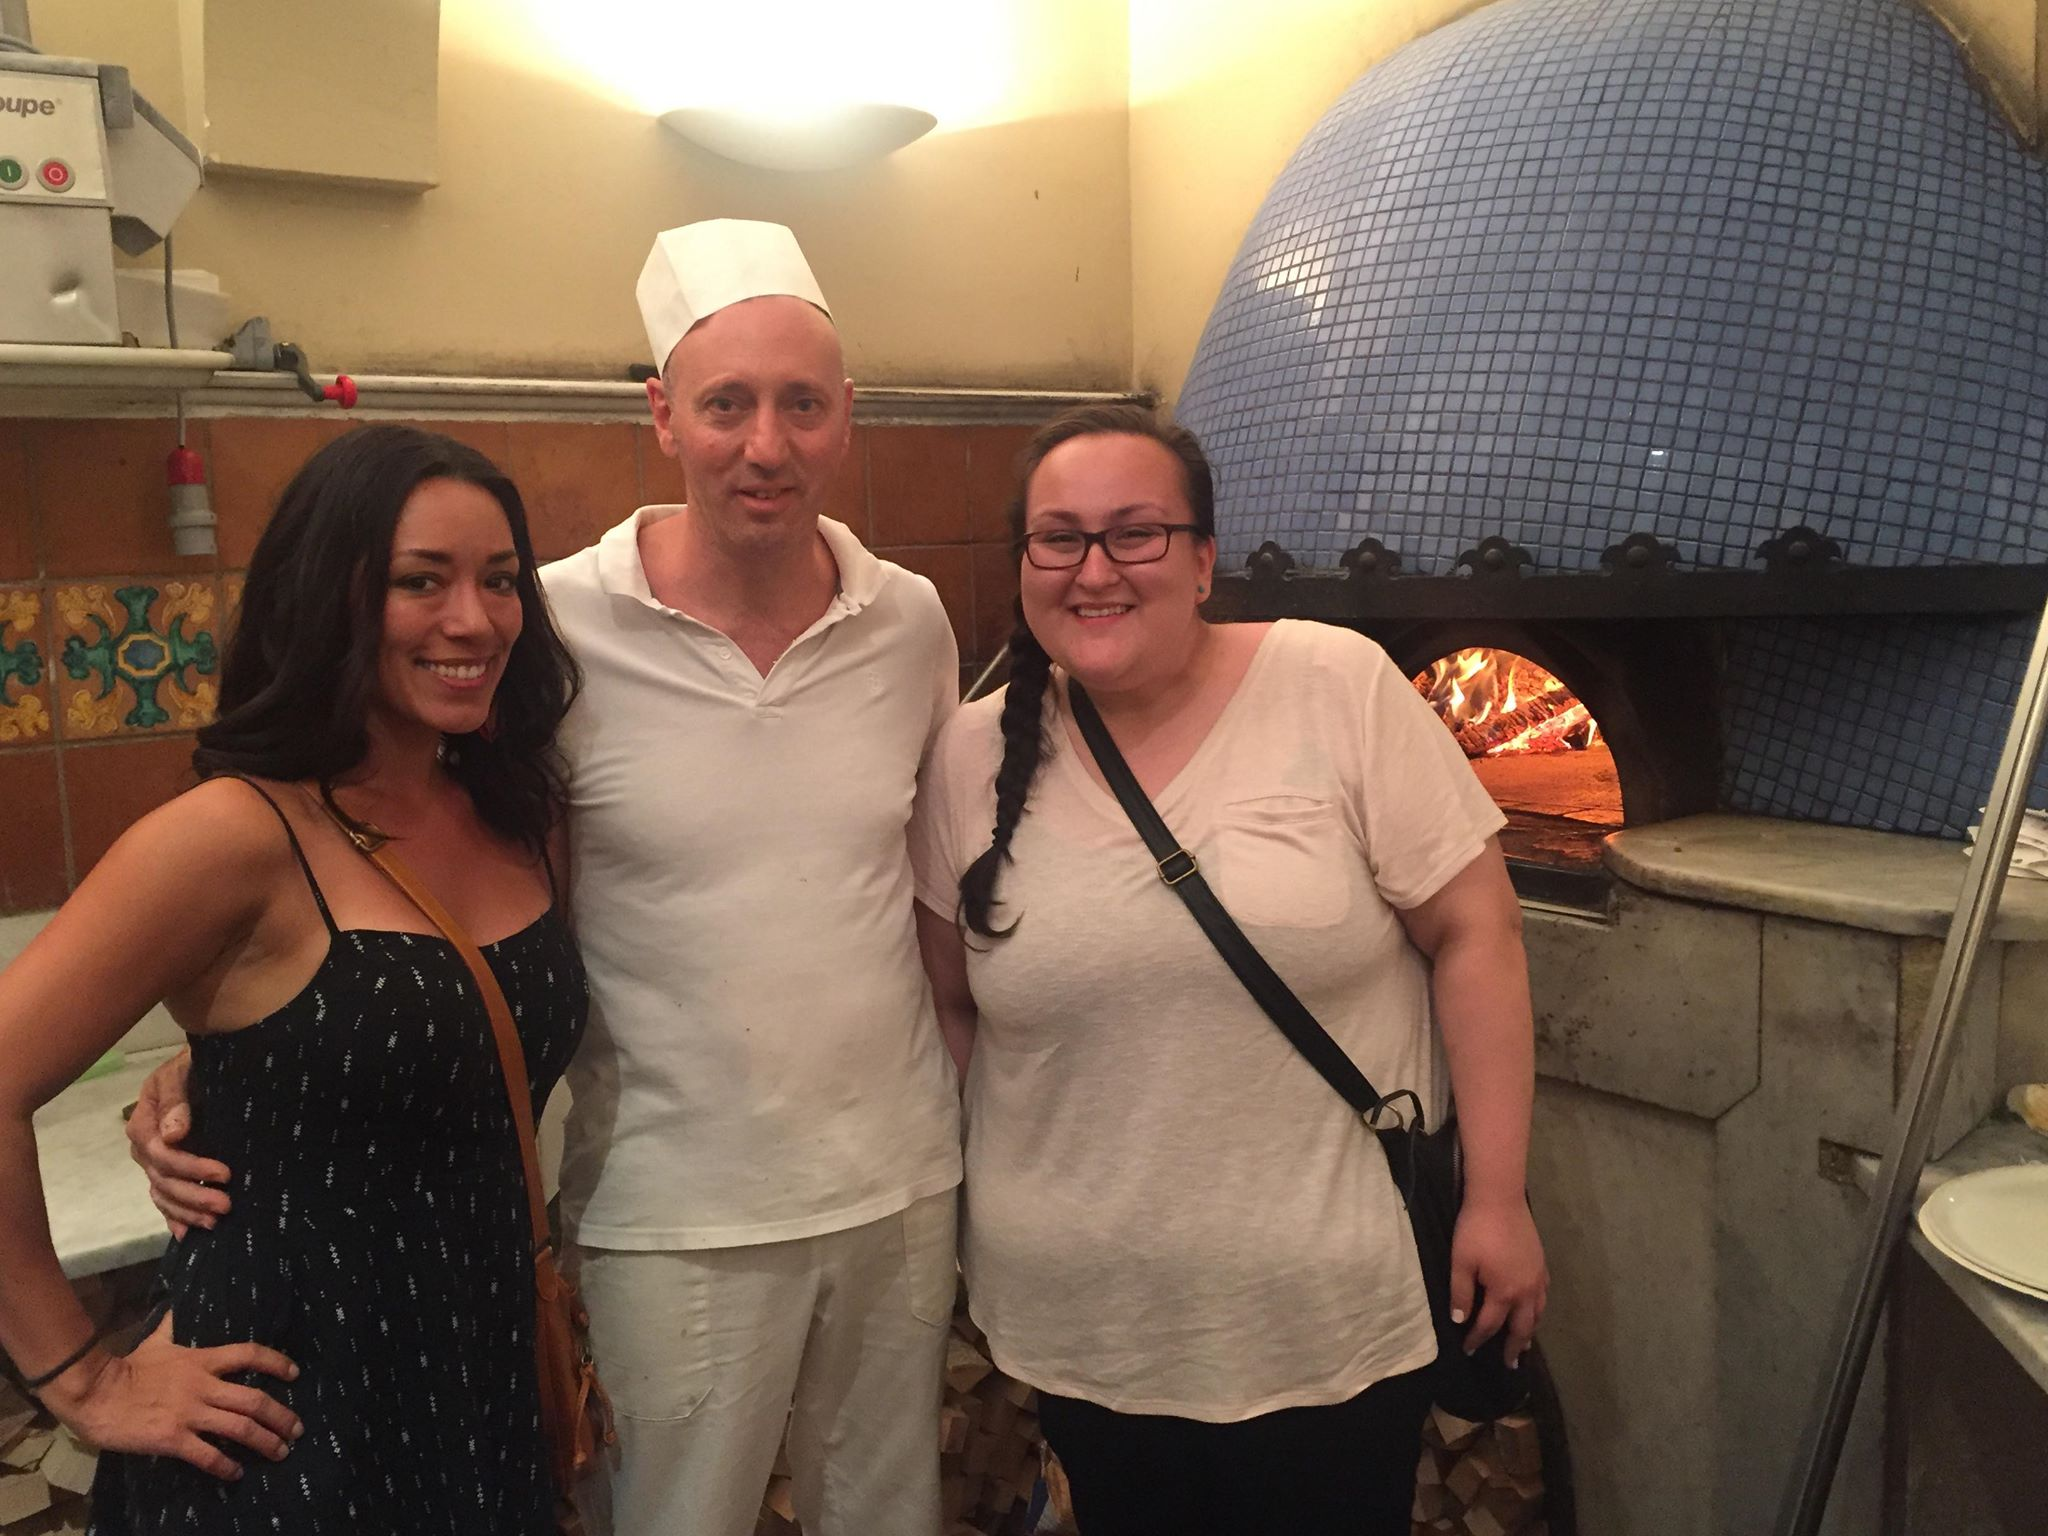 Crystal and Bridgette with one of the pizzaiolos in Rome.